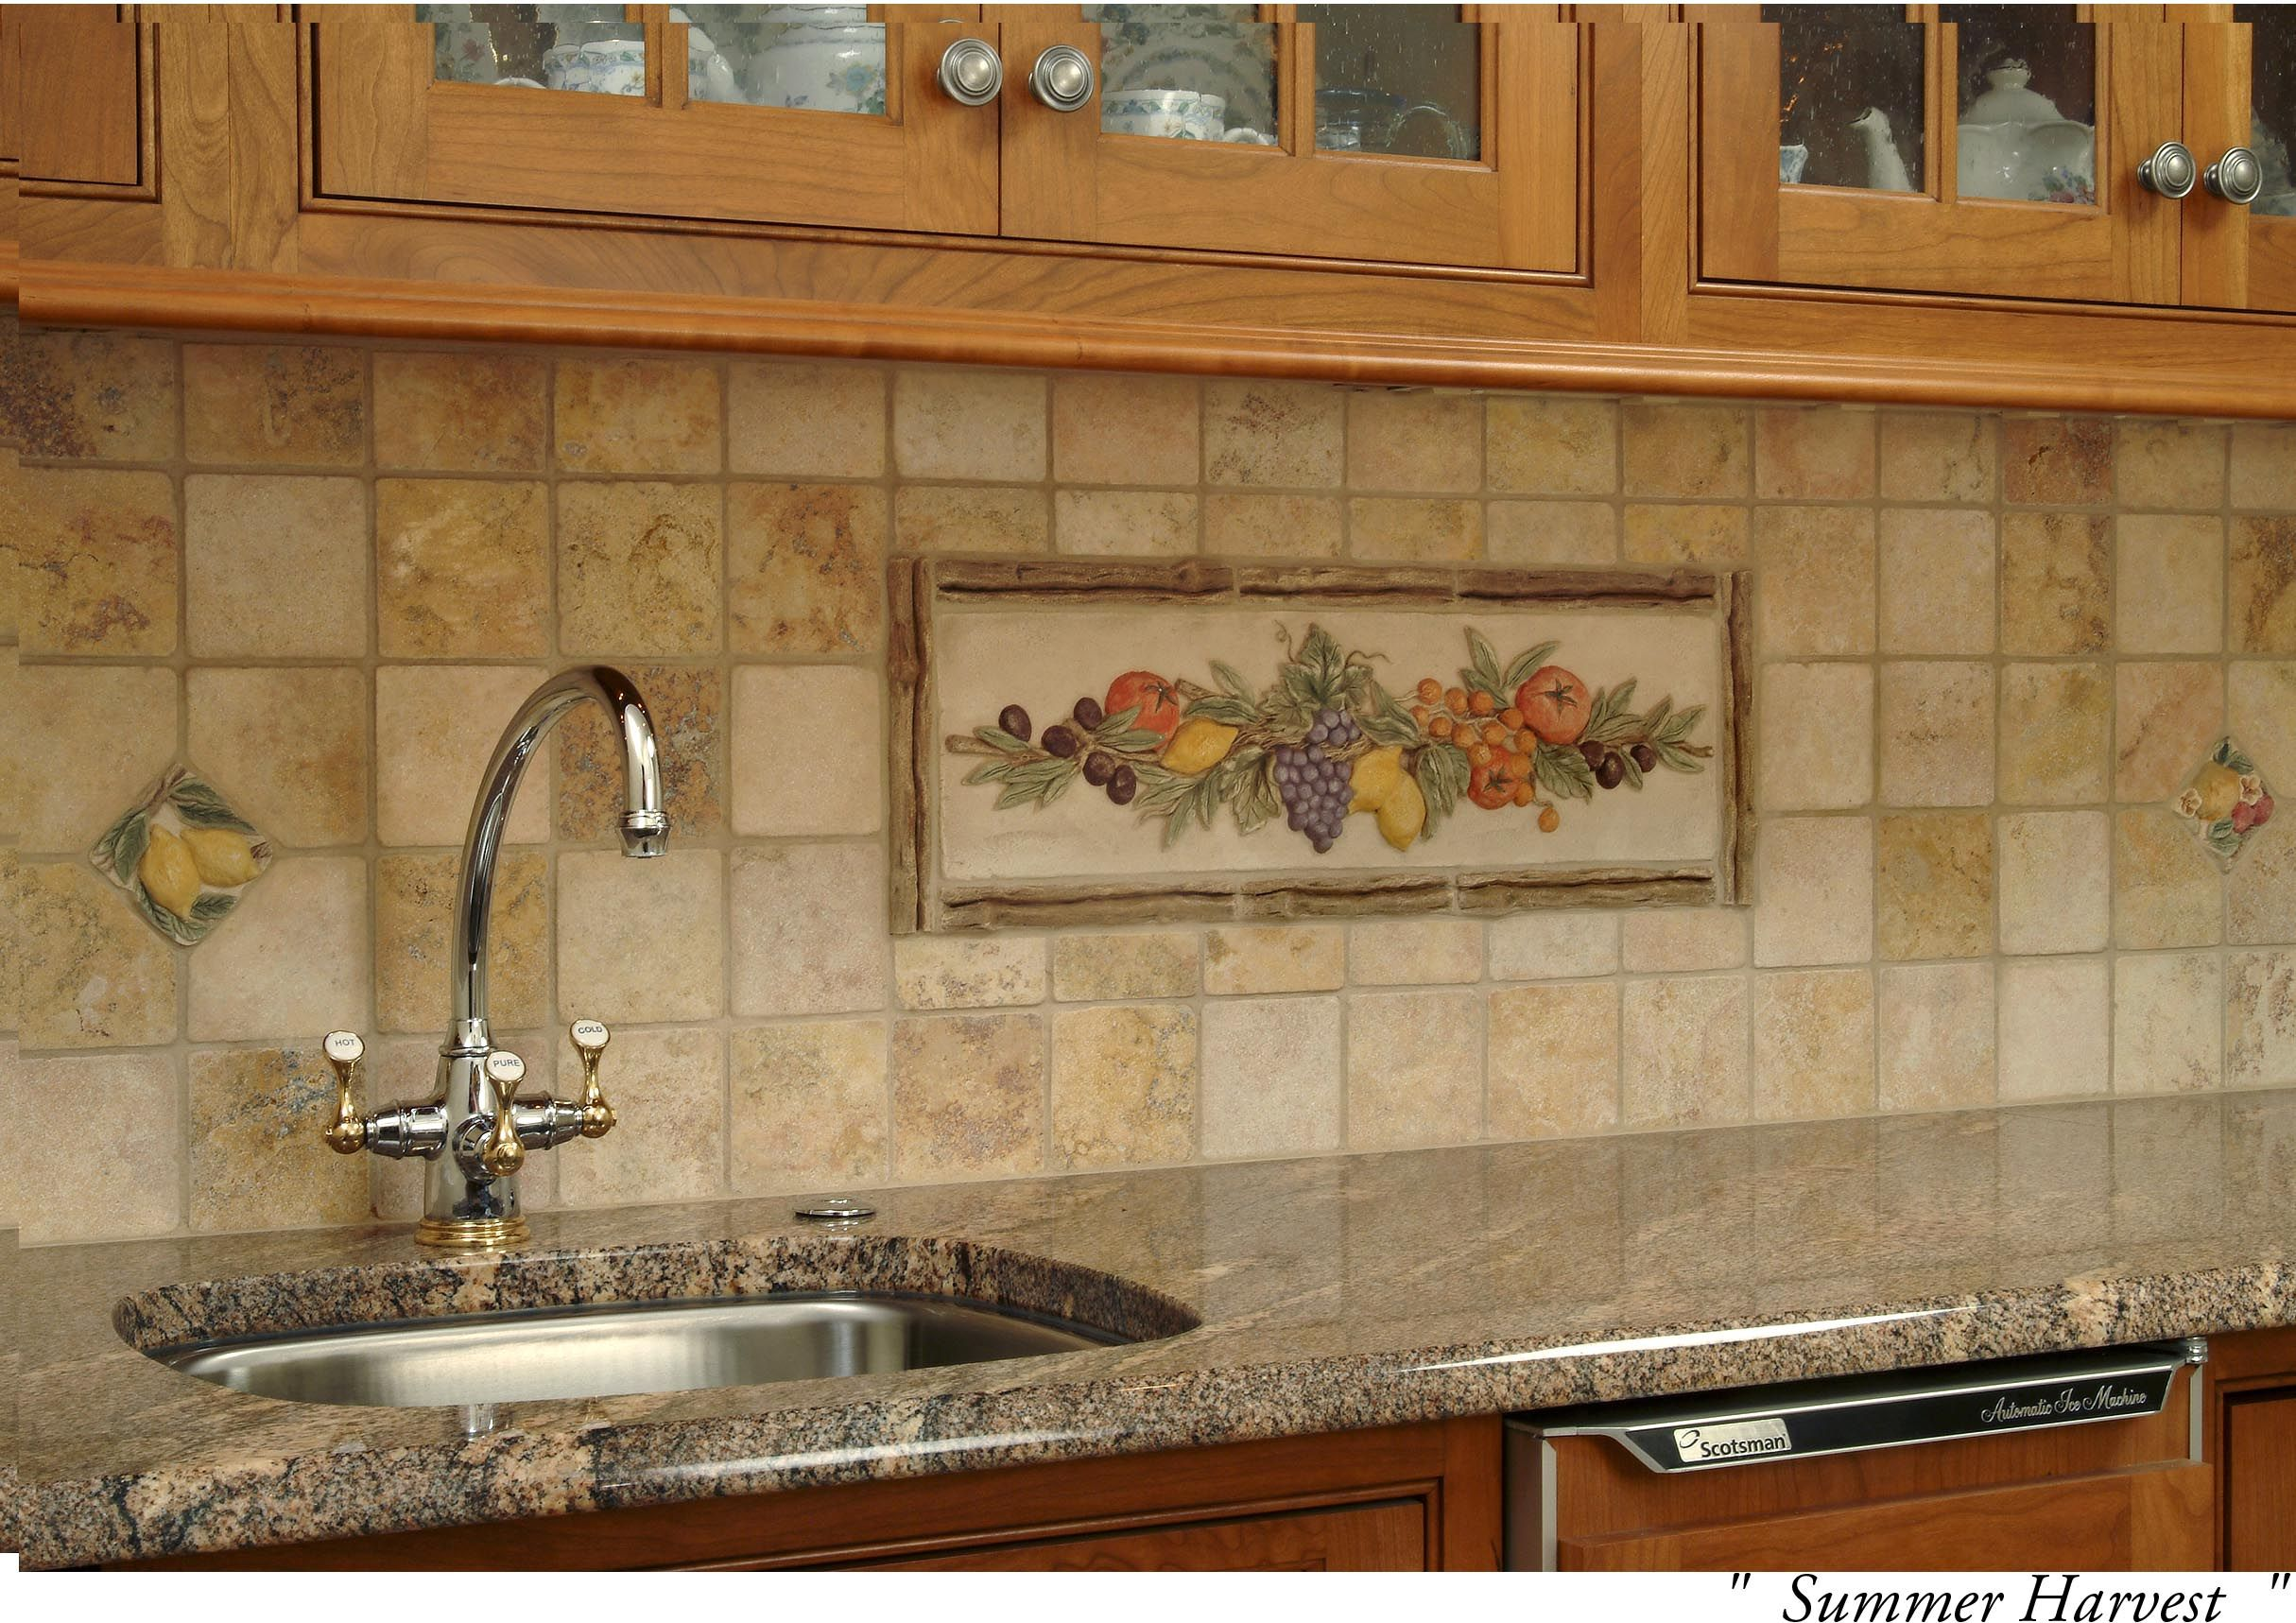 Kitchen Backsplash Wall Tiles Wall Tile Stores Near Me Decorative Kitchen Tiles Murals Border Tiles For Kitchen Walls Cheap Ceramic Tile White Ceramic Floor